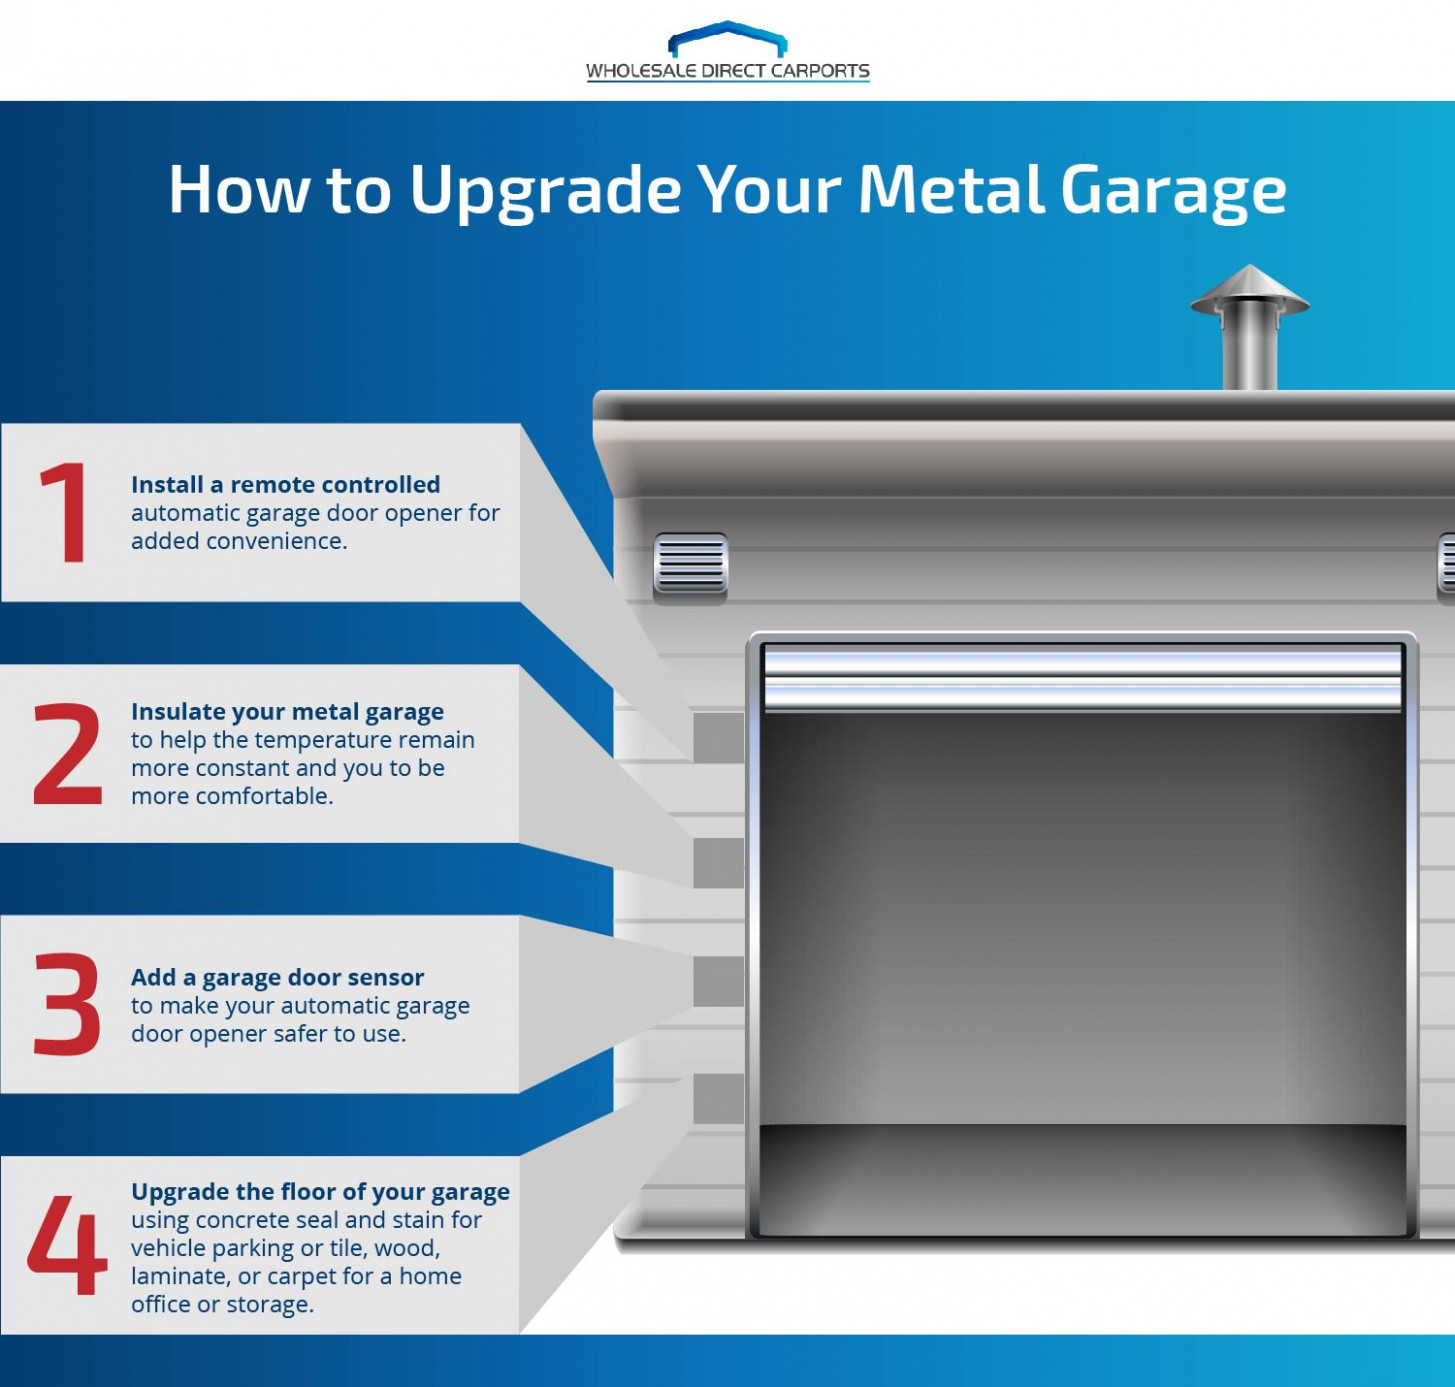 Metal Garage Upgrade Your Metal Garage Wholesale Direct ..